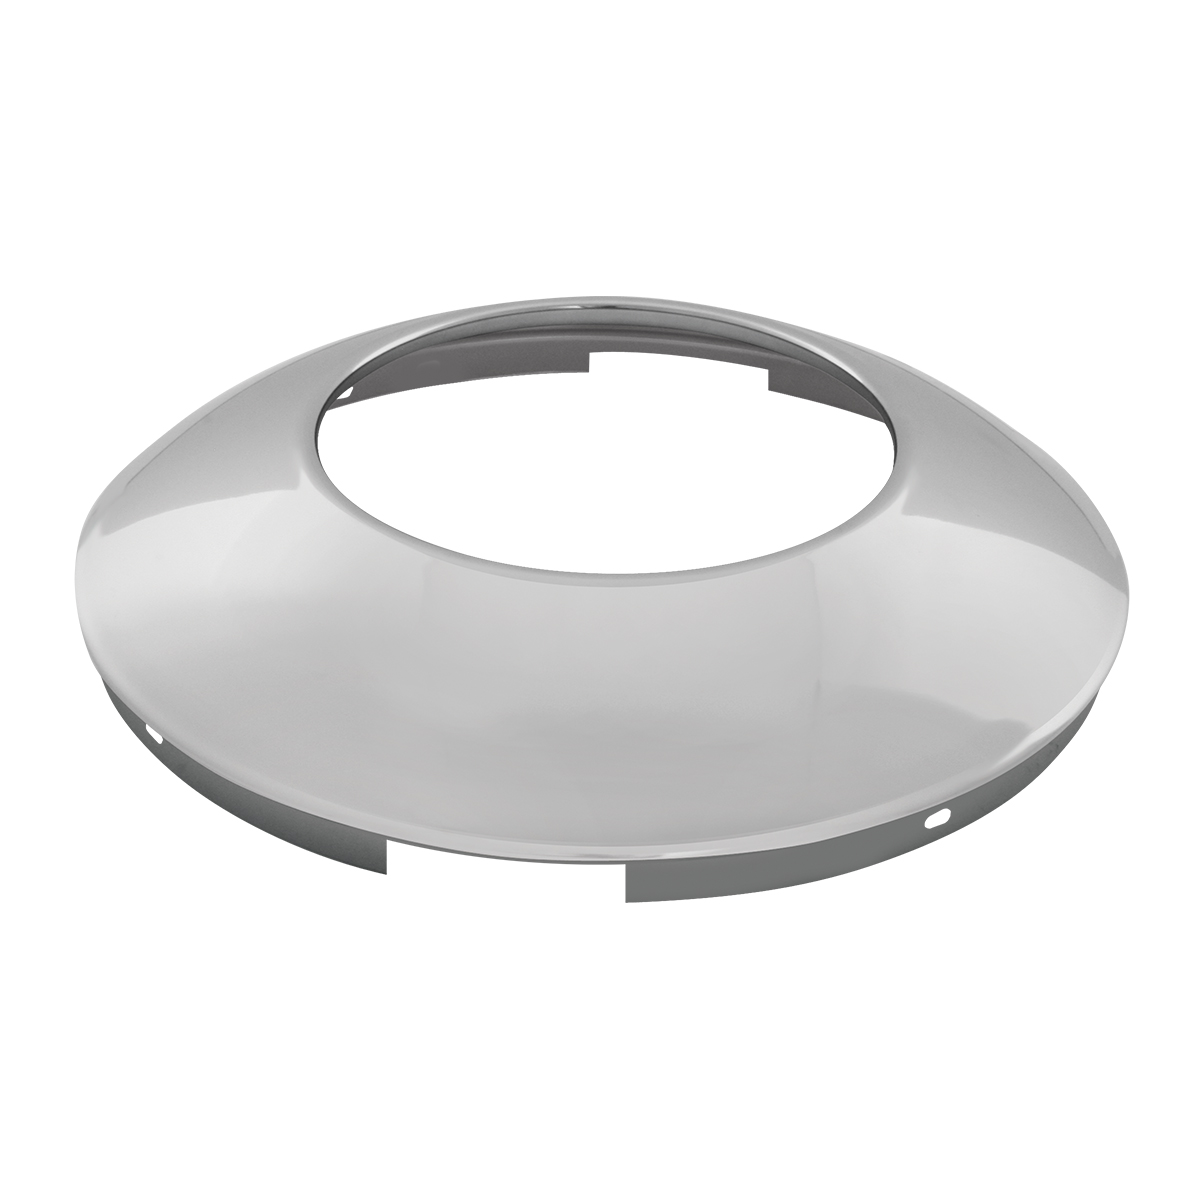 "Chrome Plated ⁷∕₁₆"" Front Hubdometer Cap"